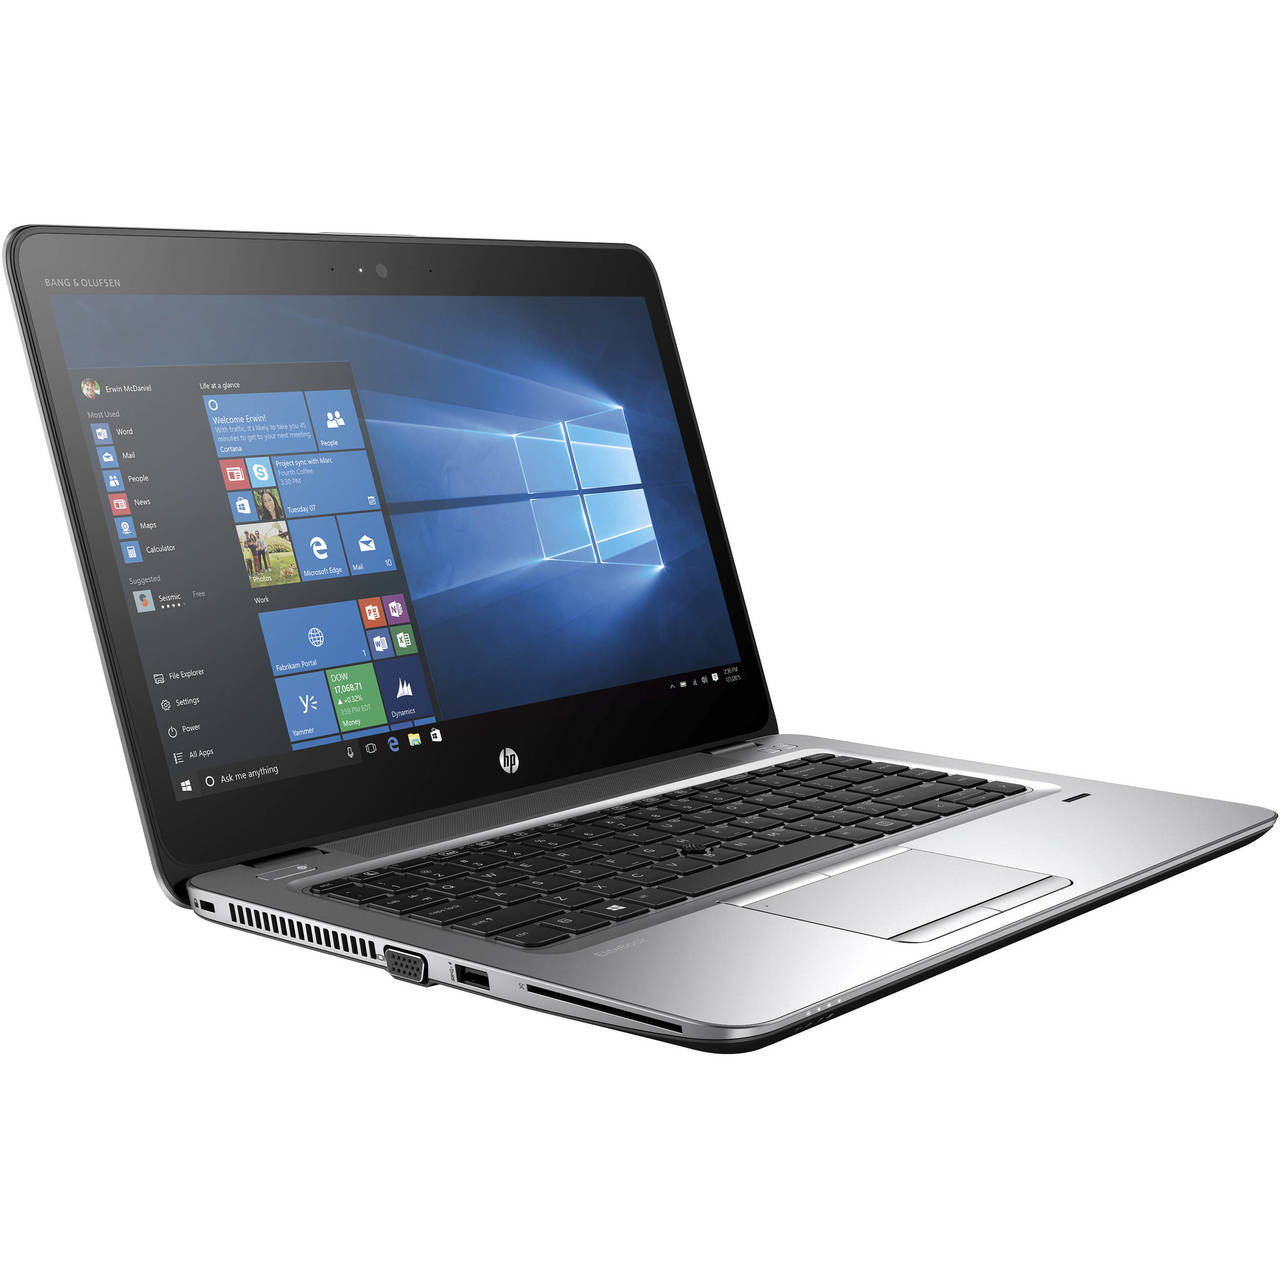 HP 840 G3 - Core i7-6500U - 256GB mSATA SSD